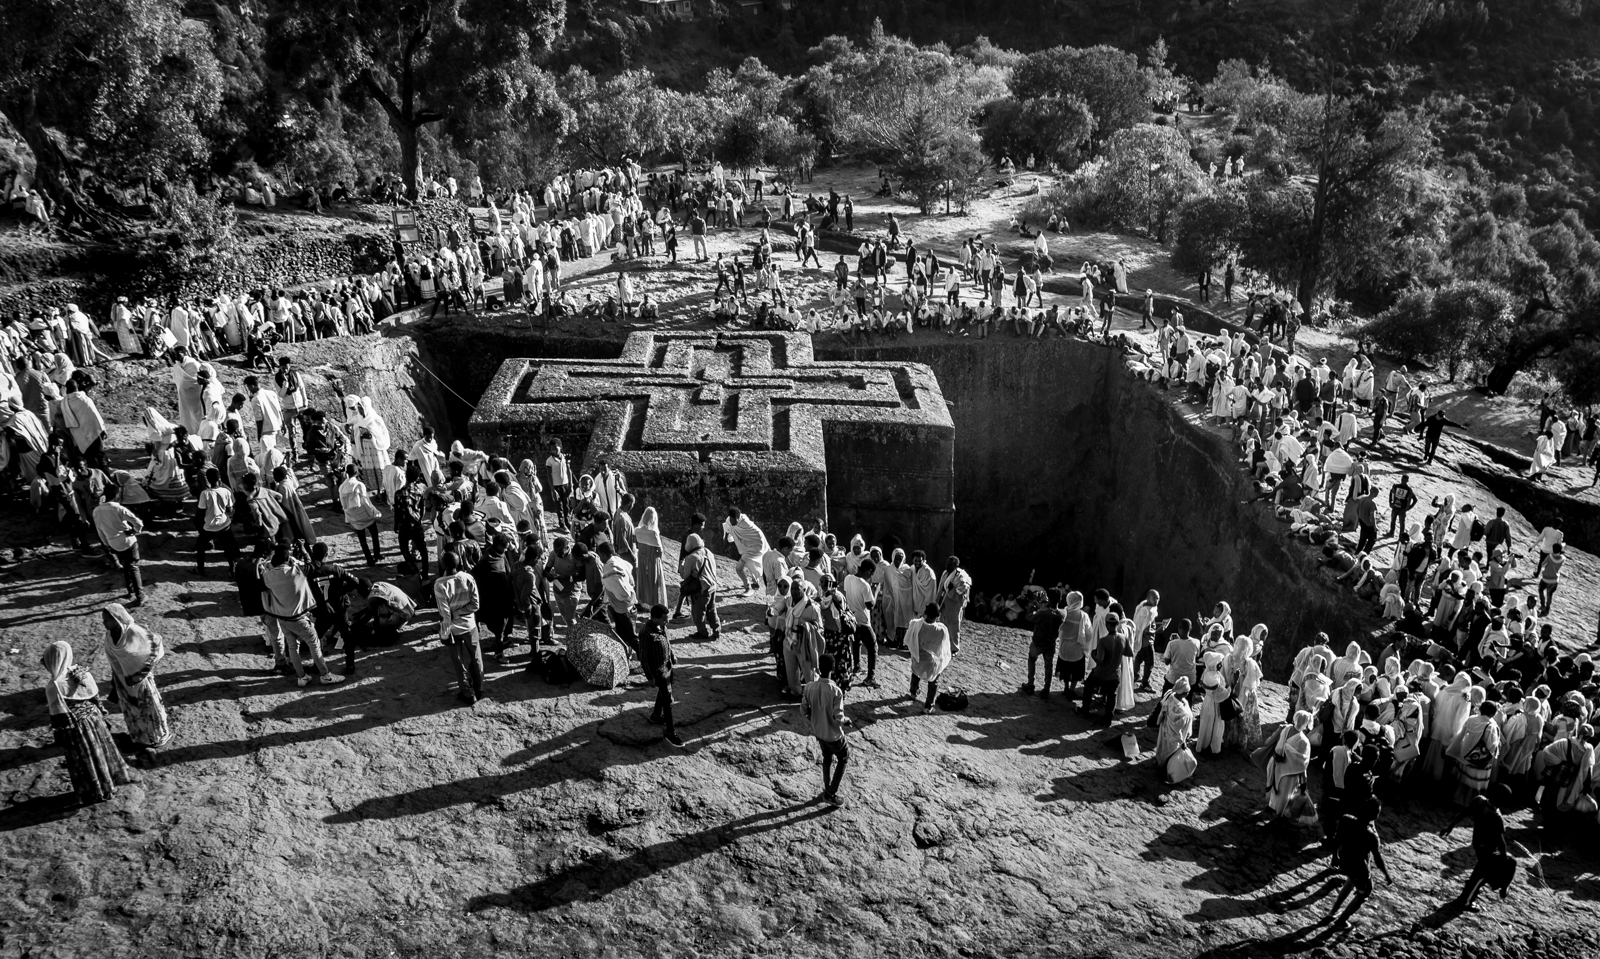 70000-worshippers-descend-on-the-holy-city-of-Lalibela-Ethiopia-at-Christmas-JA-Best-in-Show-by-Tamara-Krautkramer-SR